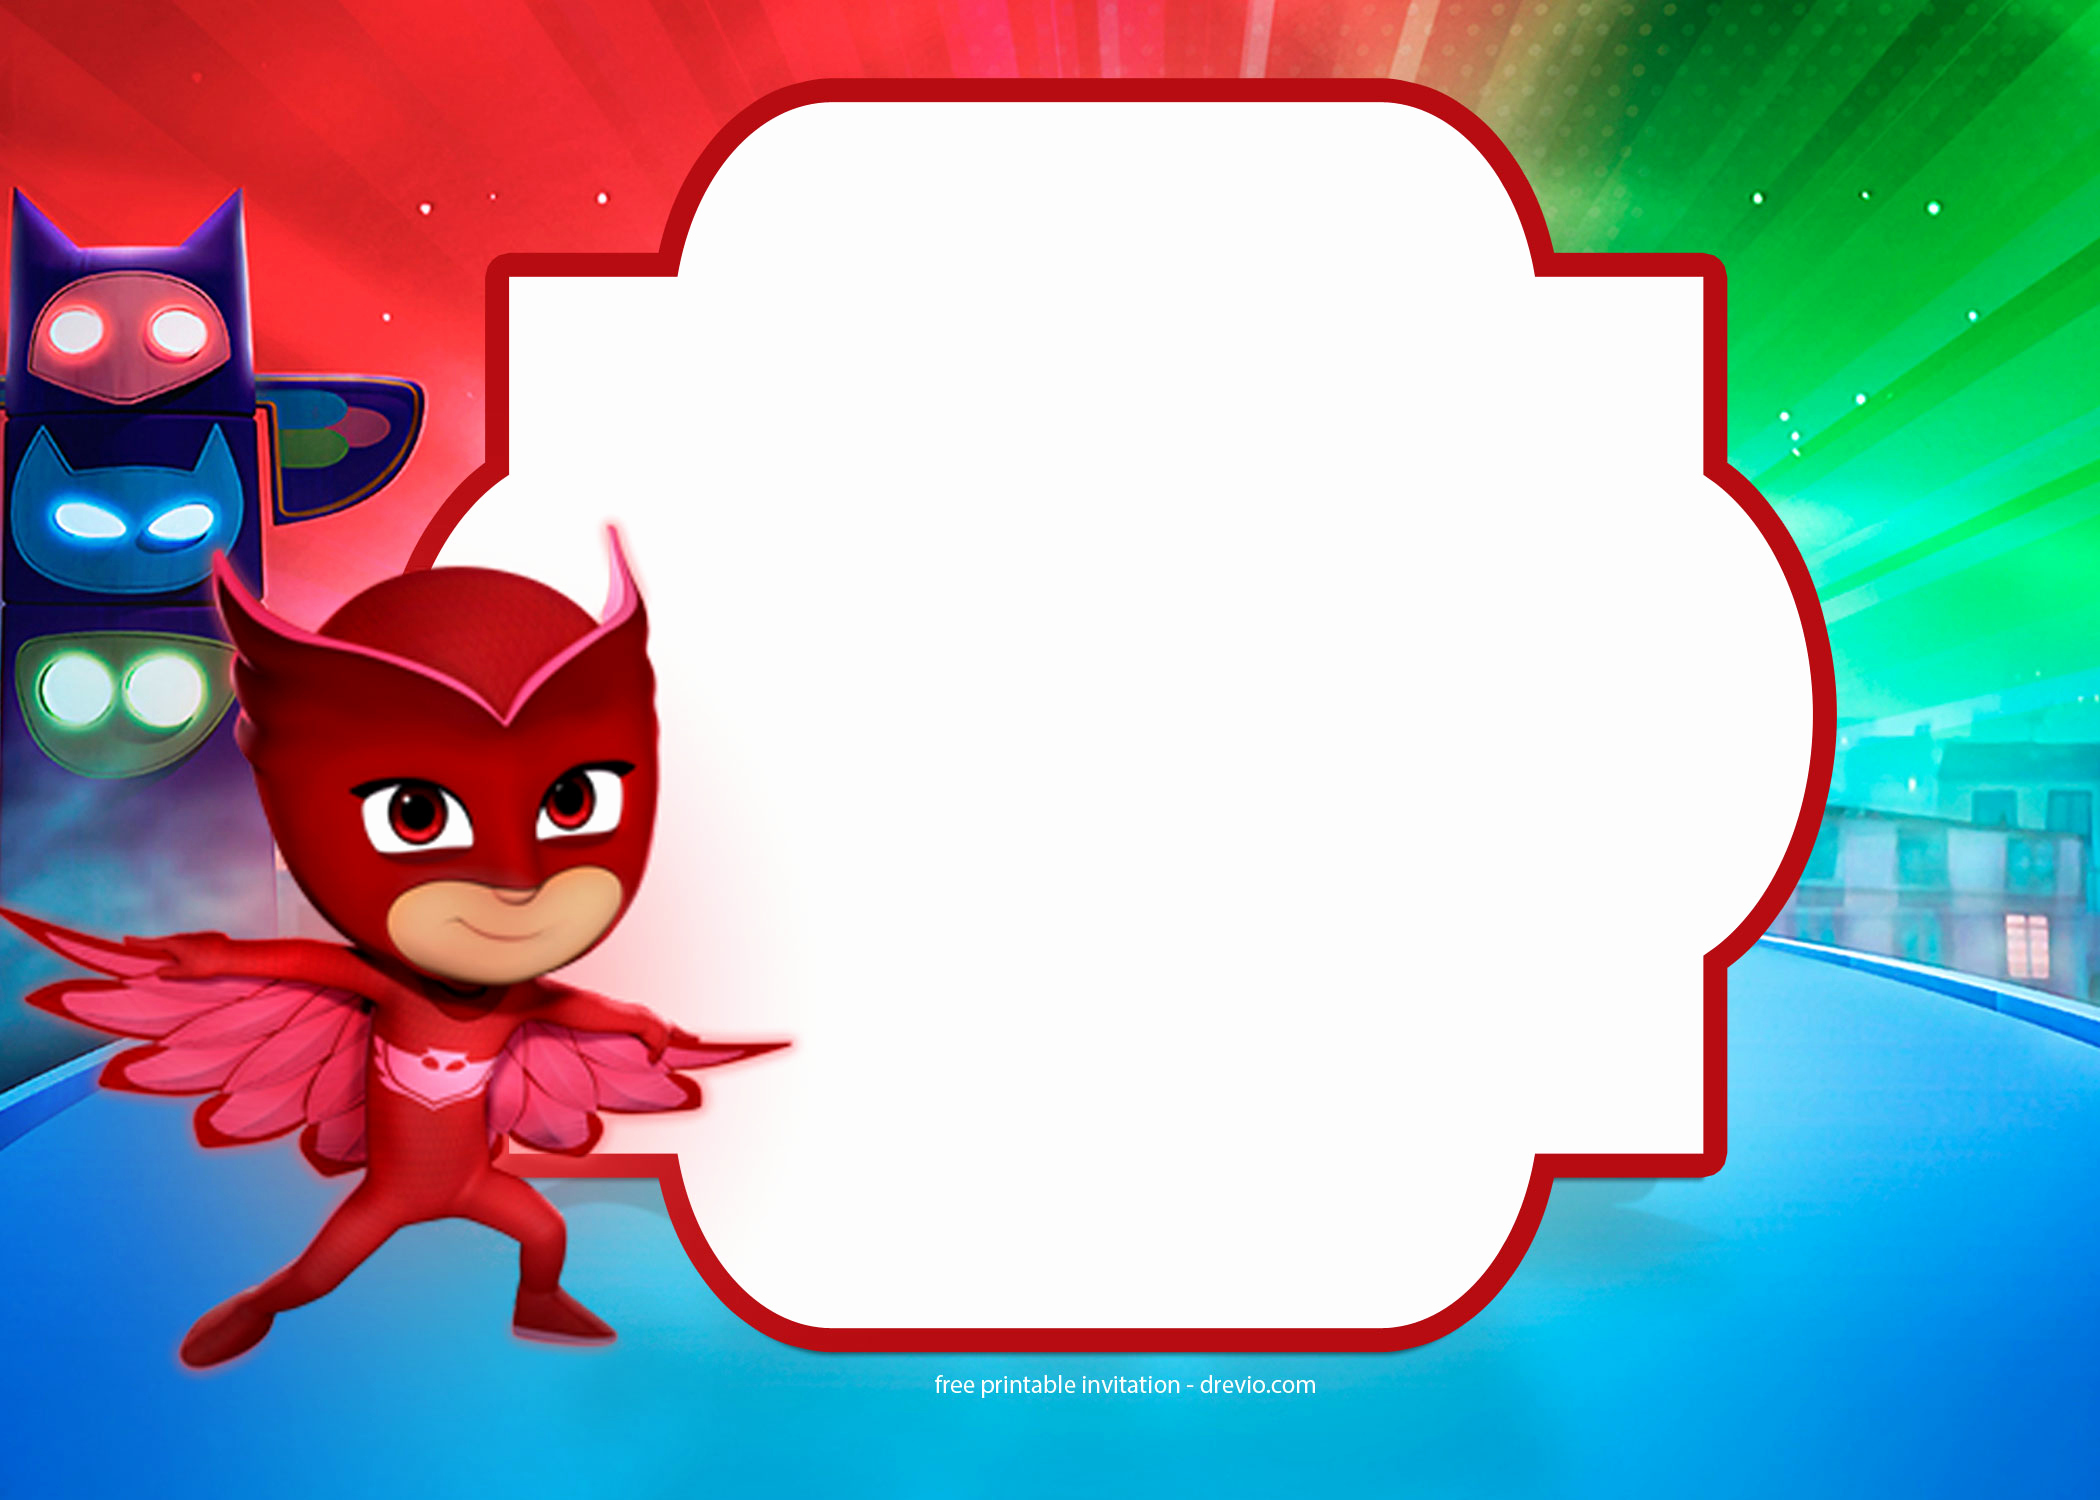 Pj Masks Invitation Template Lovely Free Pj Masks Birthday Invitation Templates